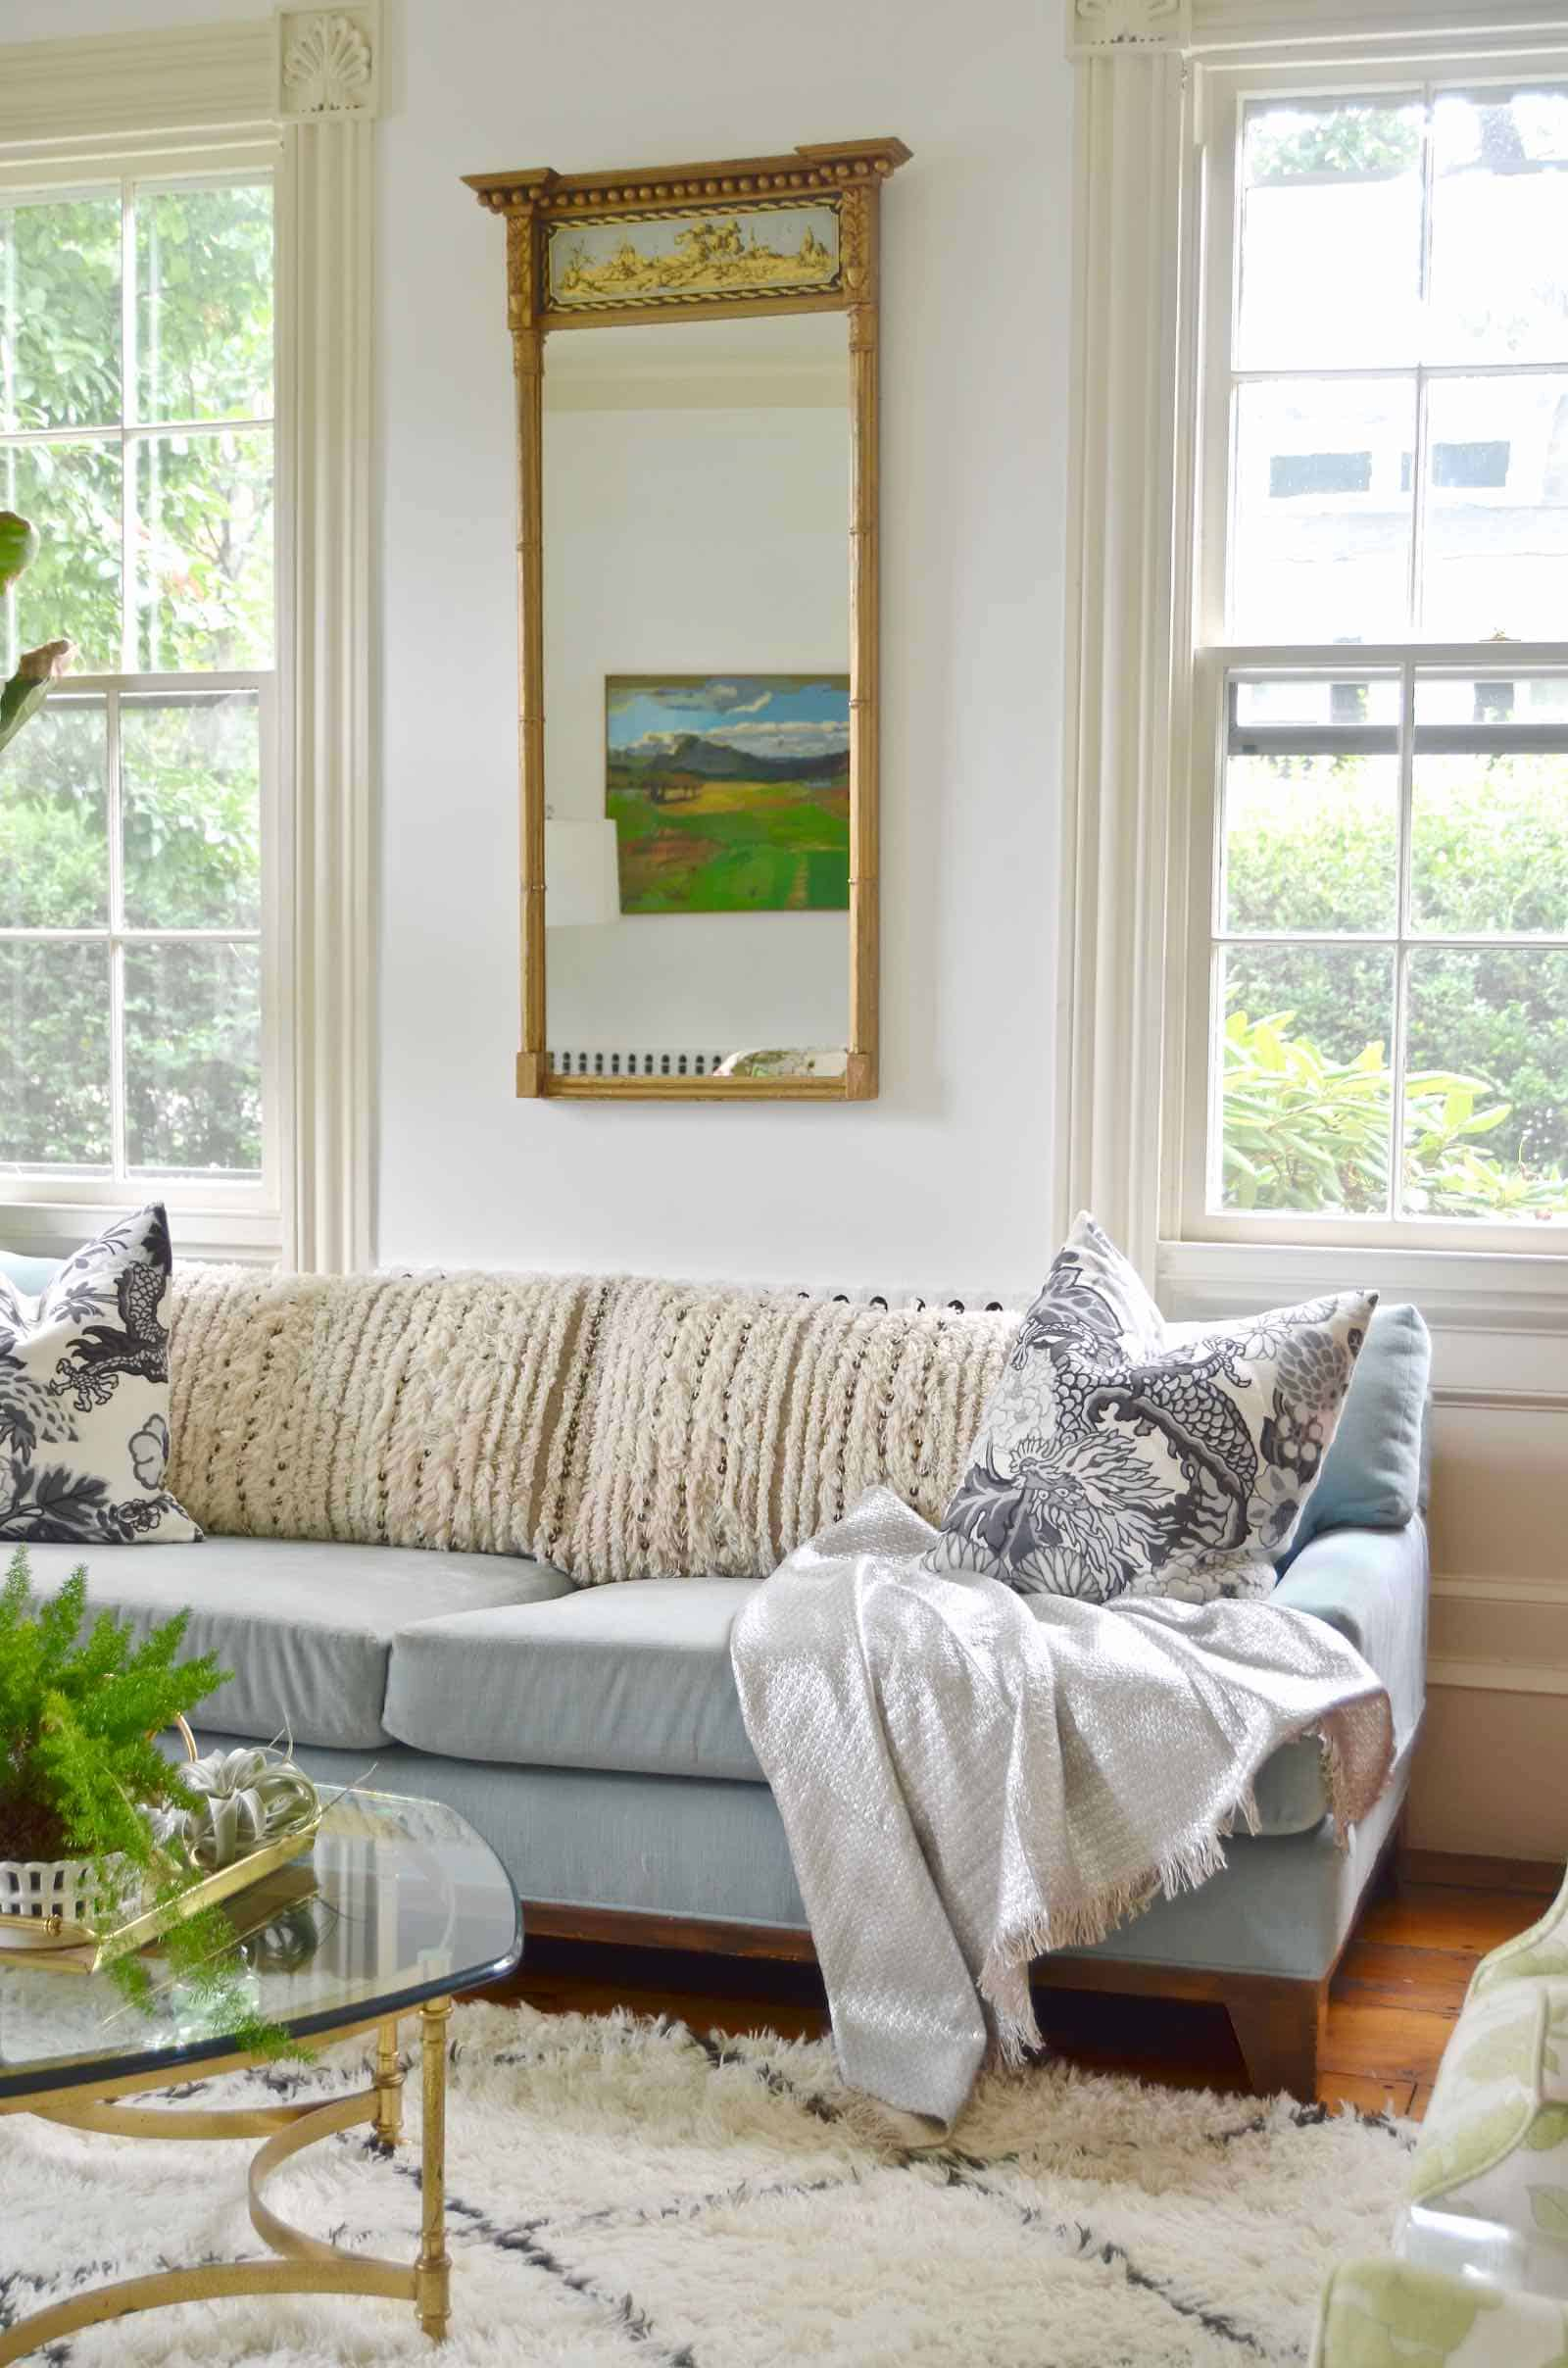 Use textiles to help you ease into fall decor